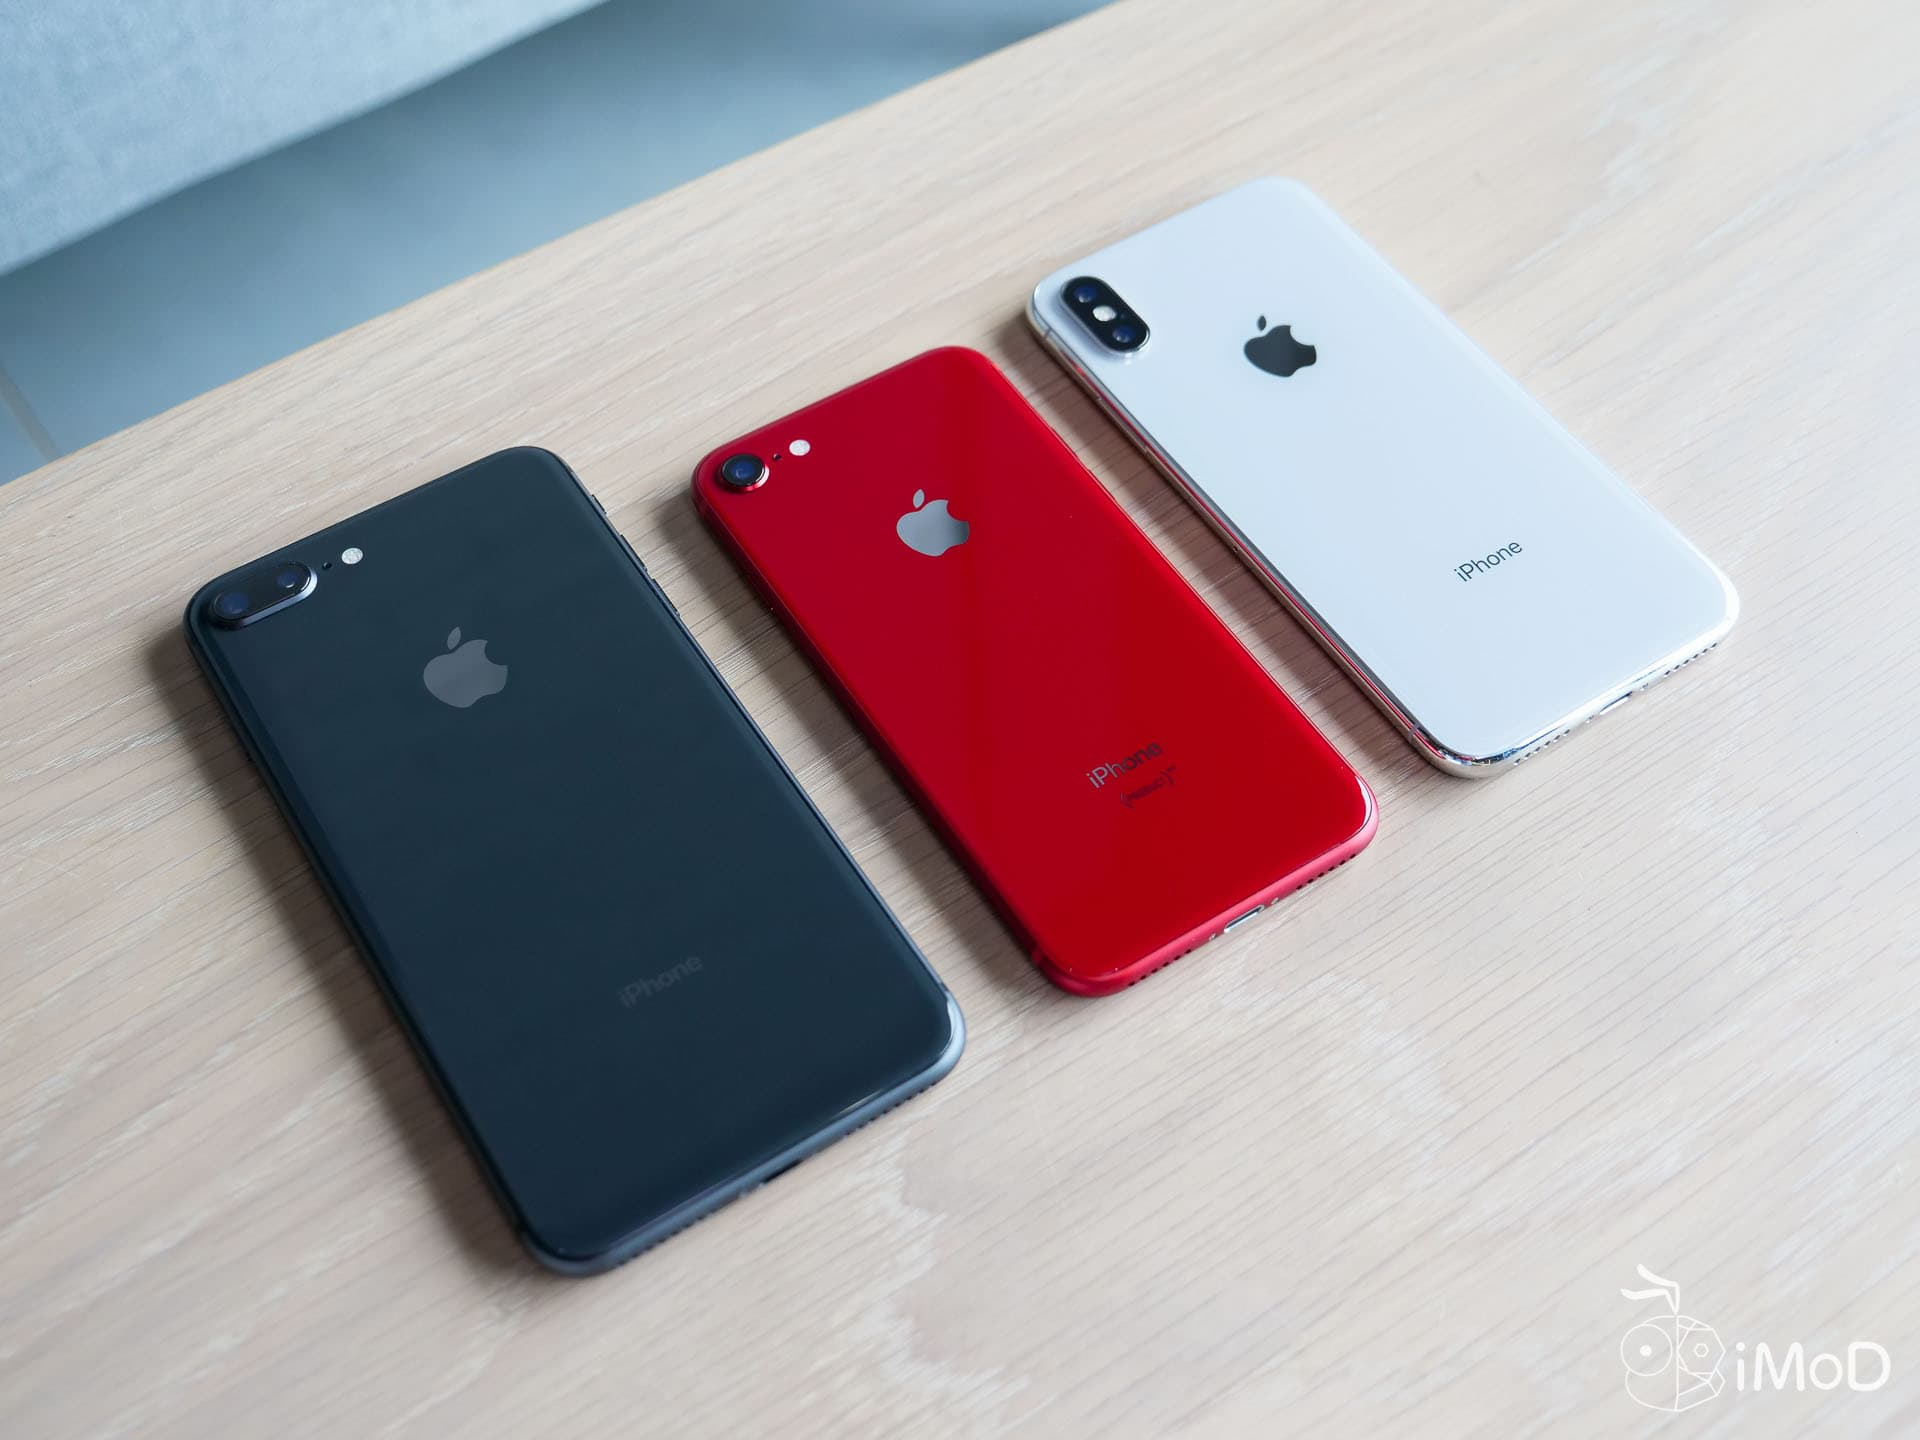 Iphone 8 Prouct Red Unbox 90